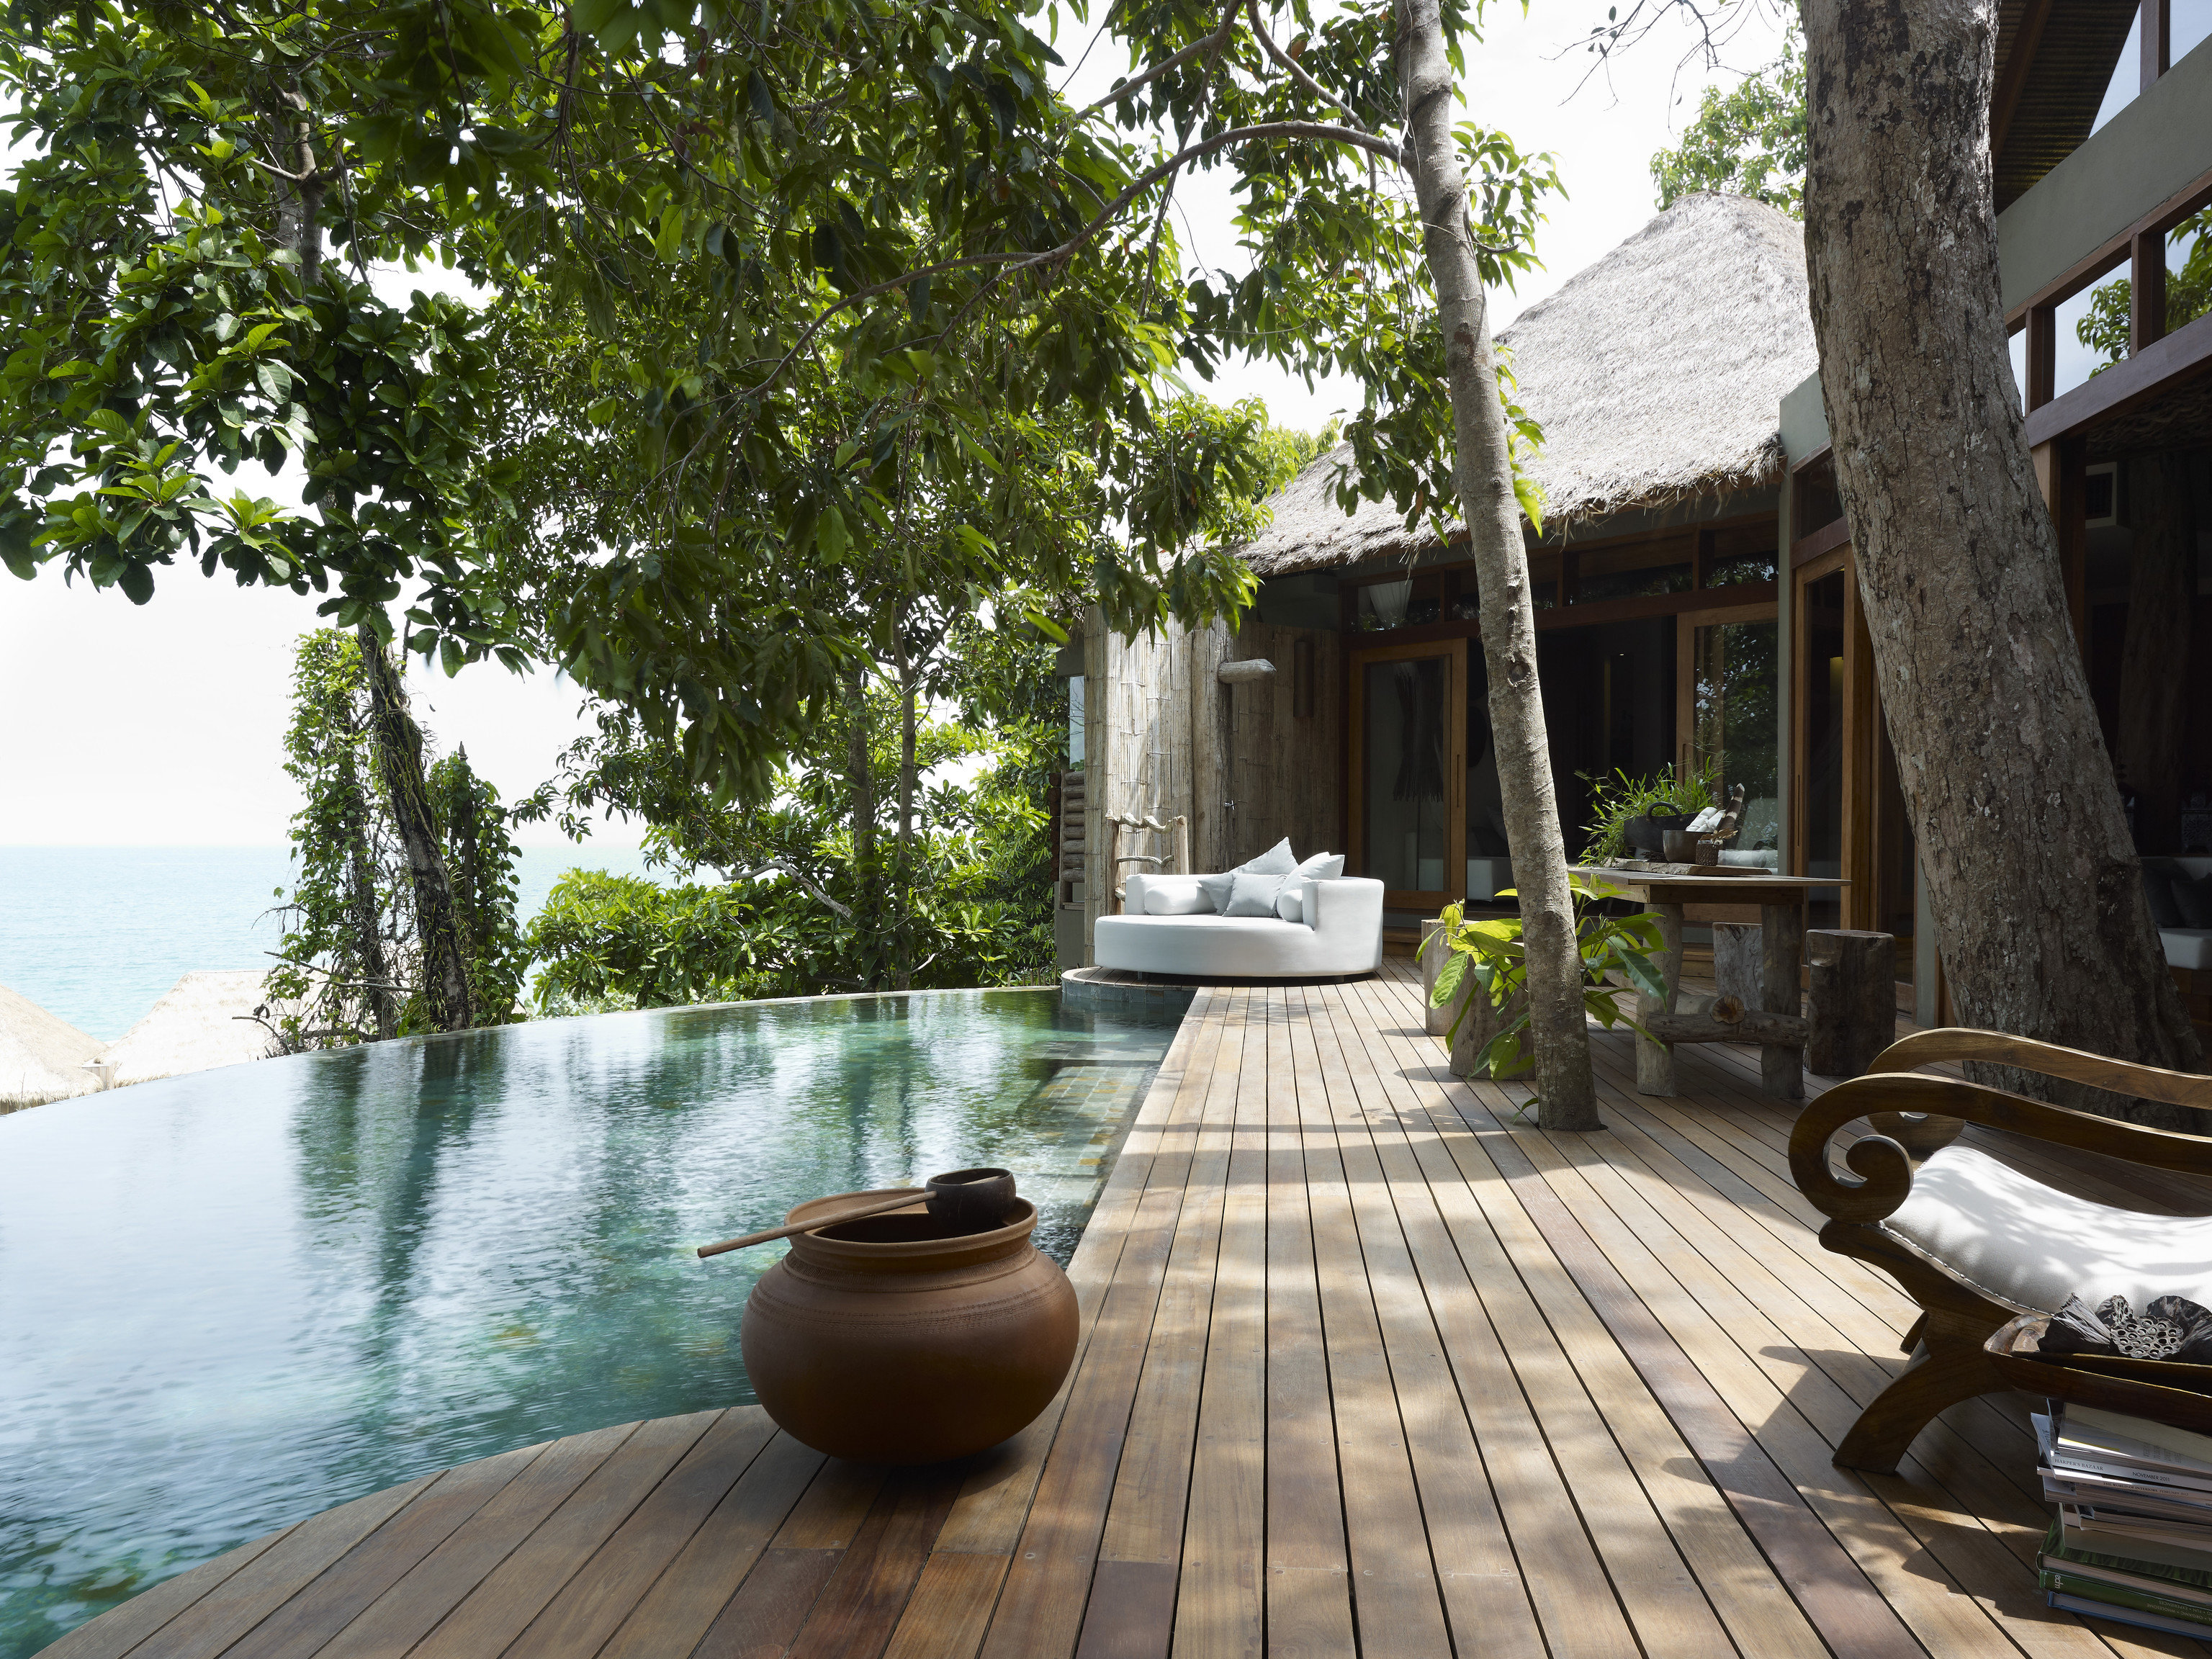 Hotels tree outdoor property estate swimming pool vacation home Resort backyard Courtyard wooden cottage Villa outdoor structure stone